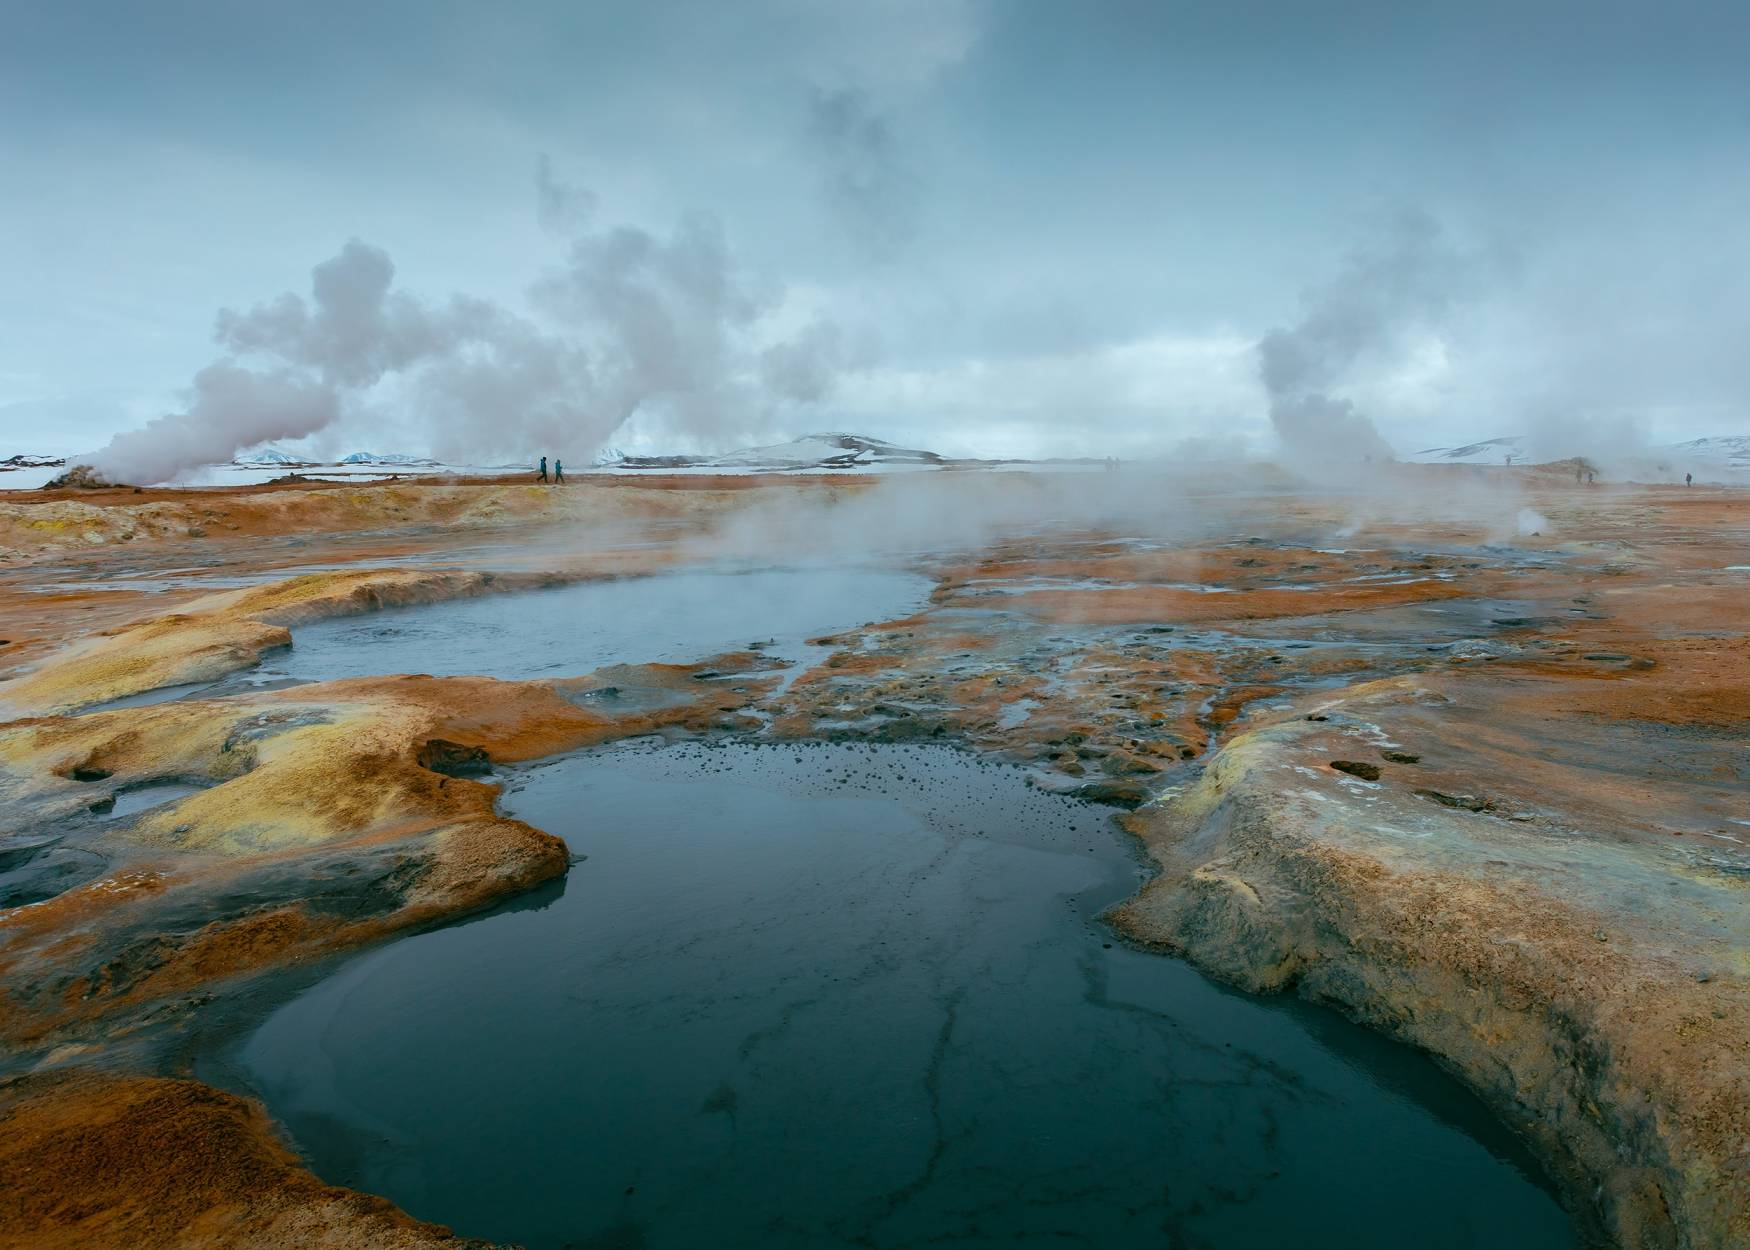 Myvatn-namaskard-boiling-mud-steam-on-a-fall-day-people-walking-in-the-distance